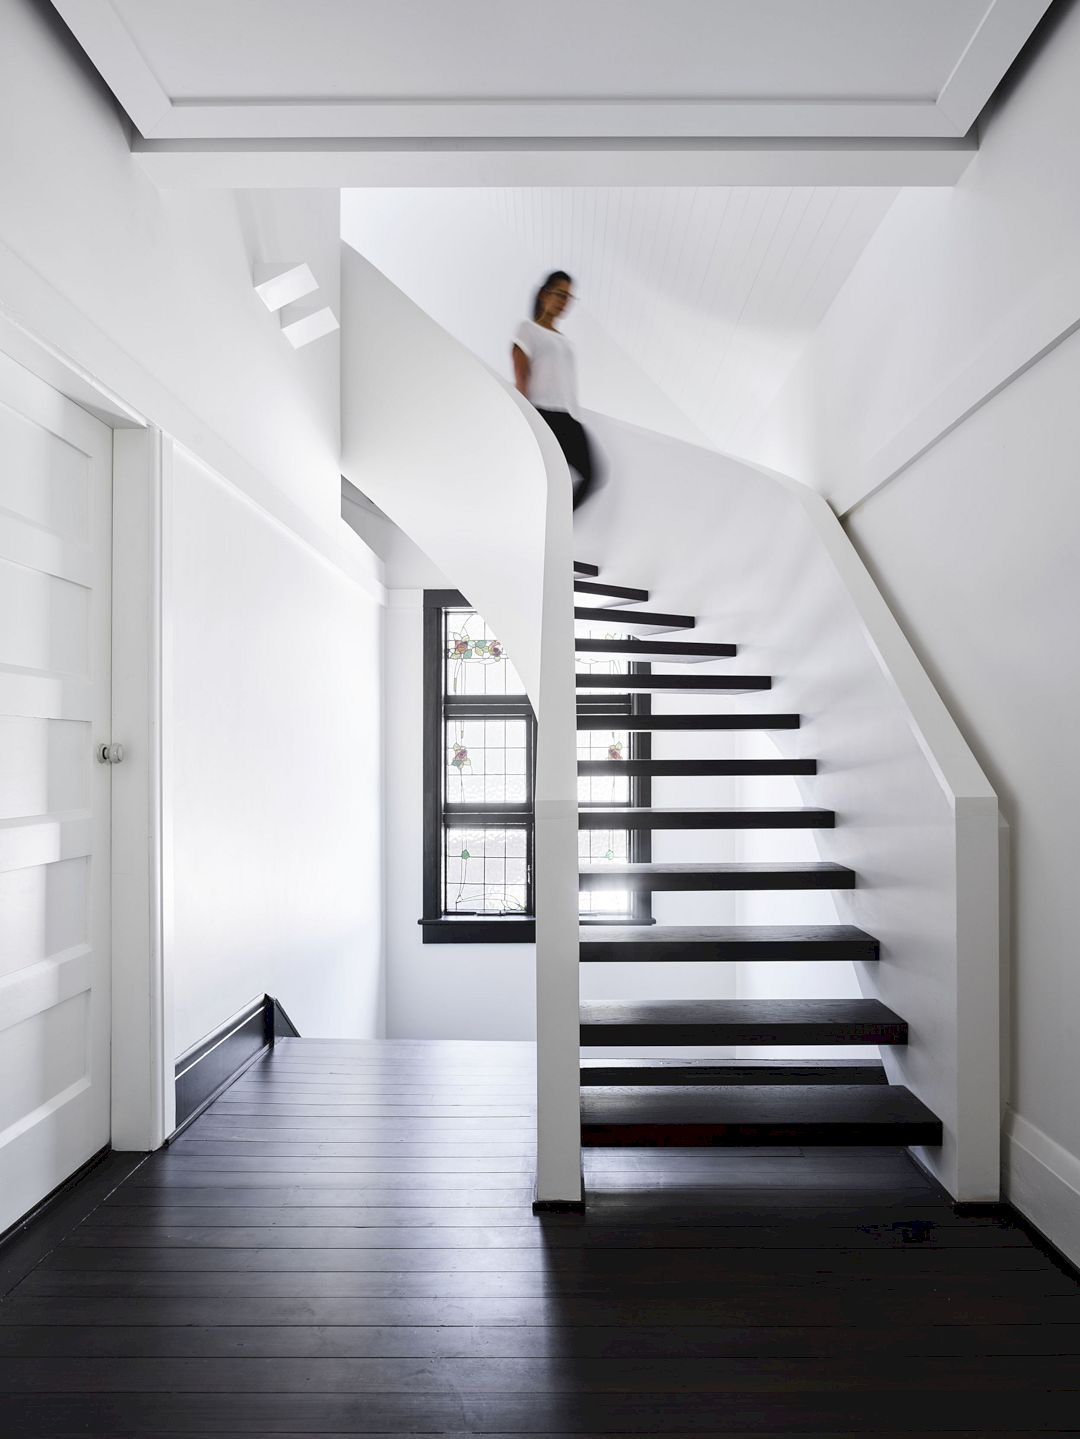 Attic House By Madeleine Blanchfield Architects 3